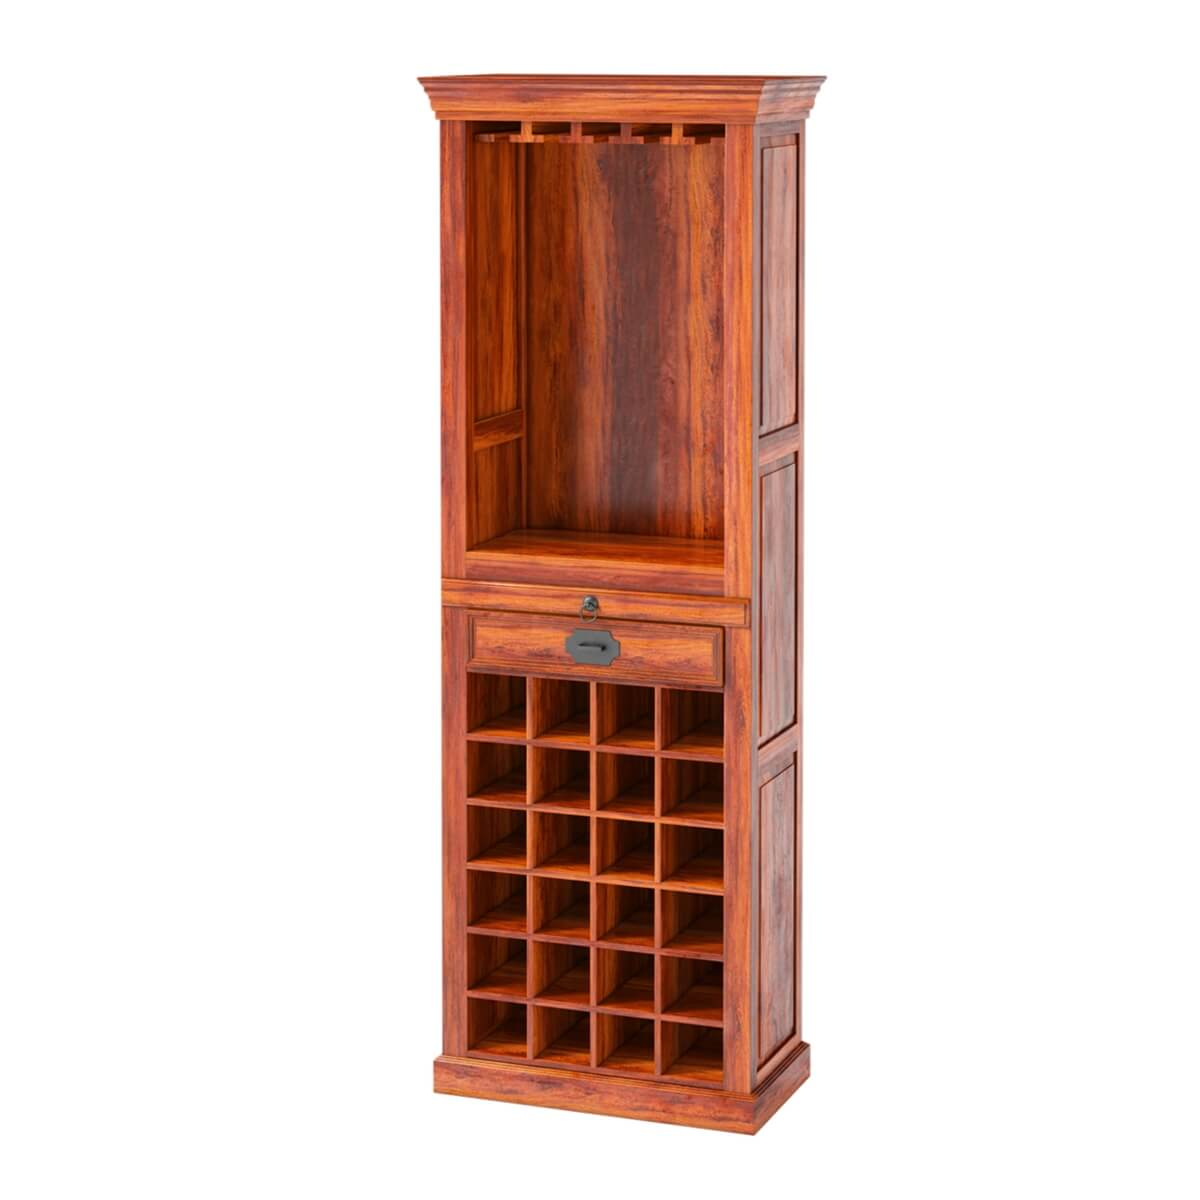 Lovedale Rustic Mango Wood 72 Quot Tall Tower Bar Cabinet With